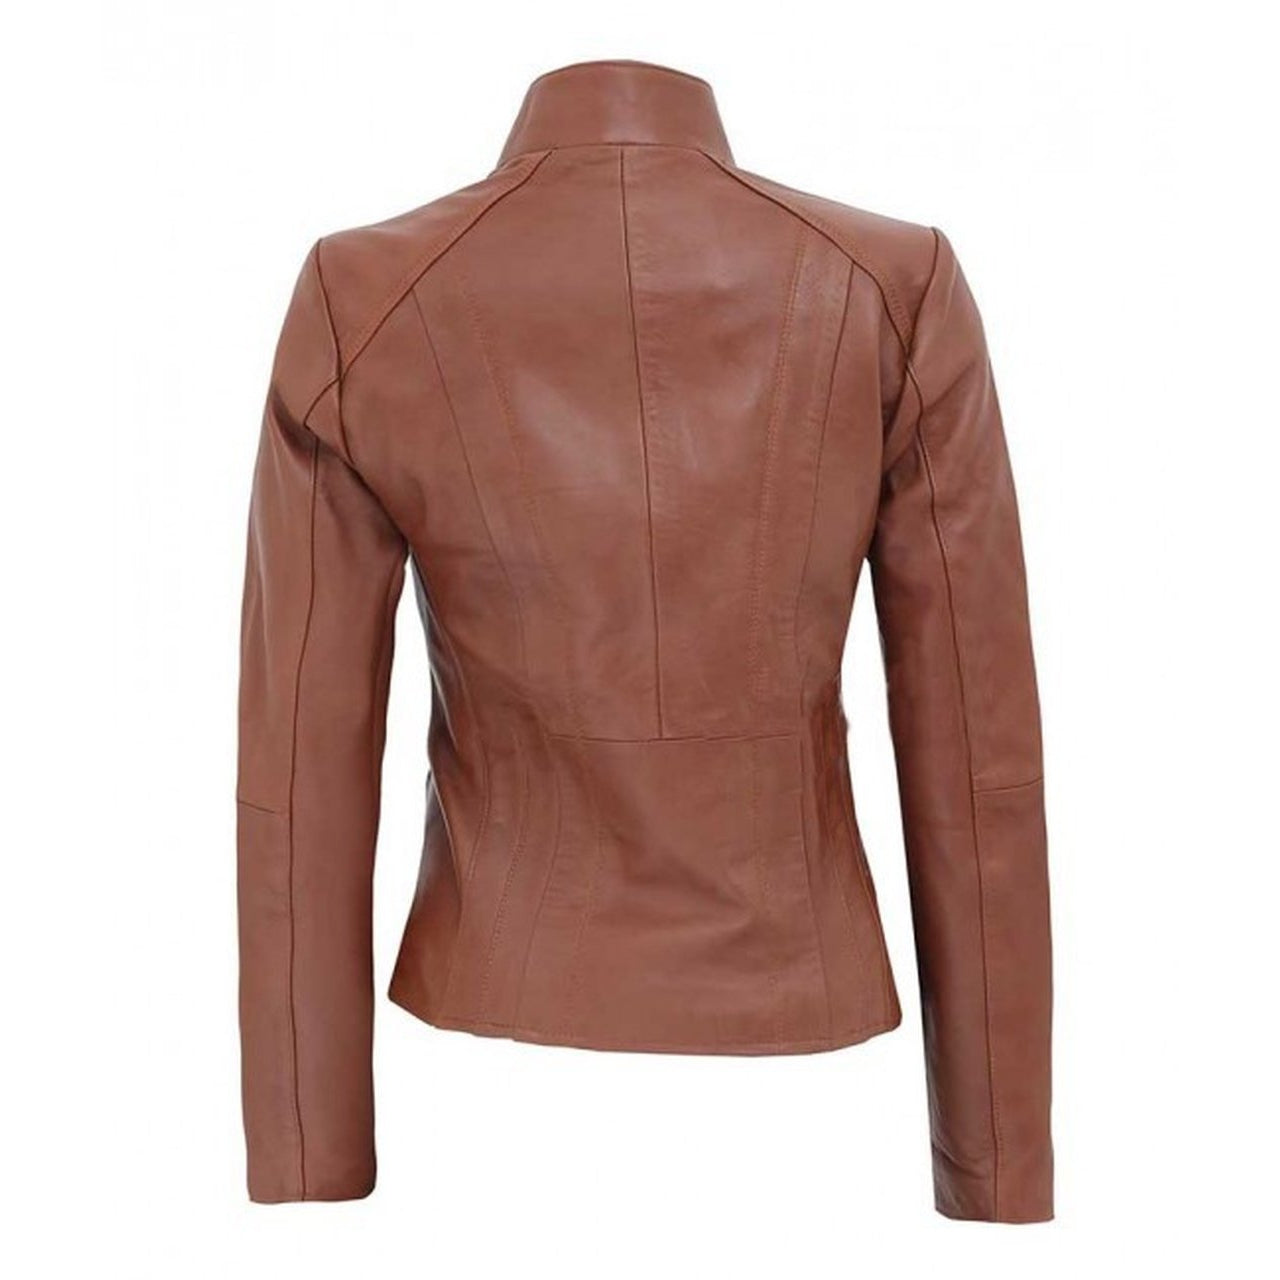 Women Tan Asymmetrical Biker Leather Jacket - Leather Jacket